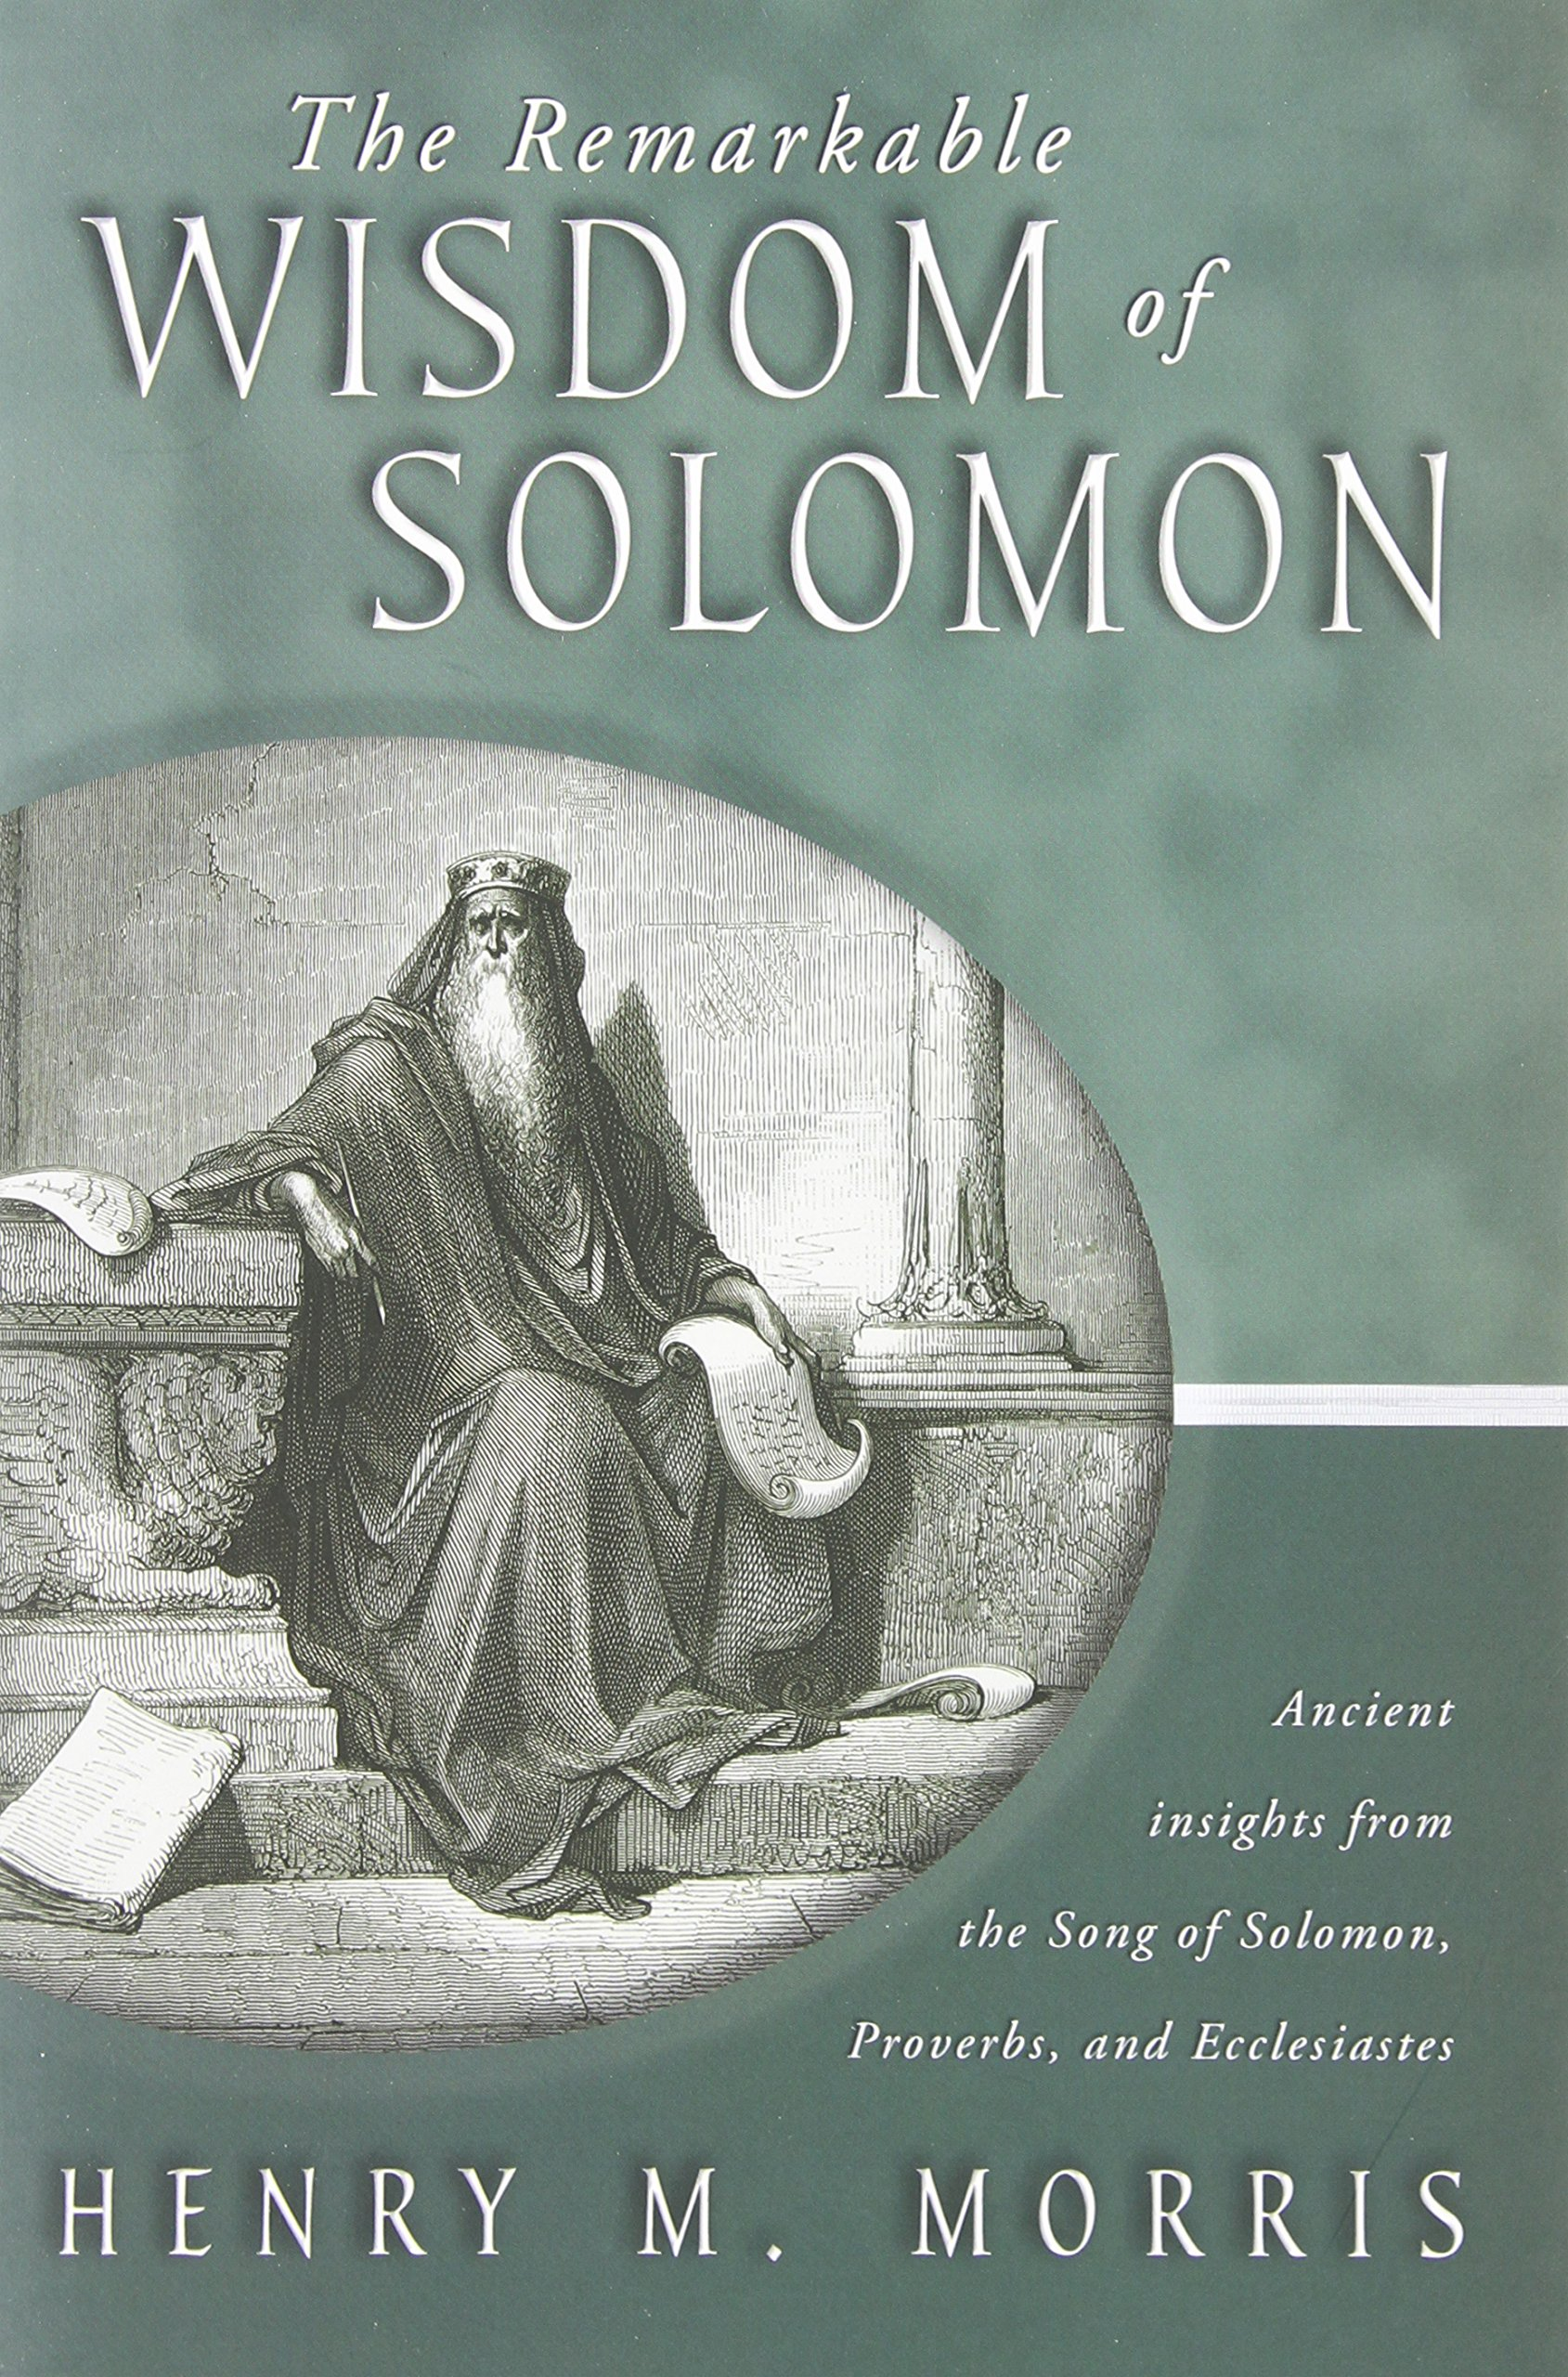 d42ccb226a08 The Remarkable Wisdom of Solomon  Henry Morris  9780890513569 ...